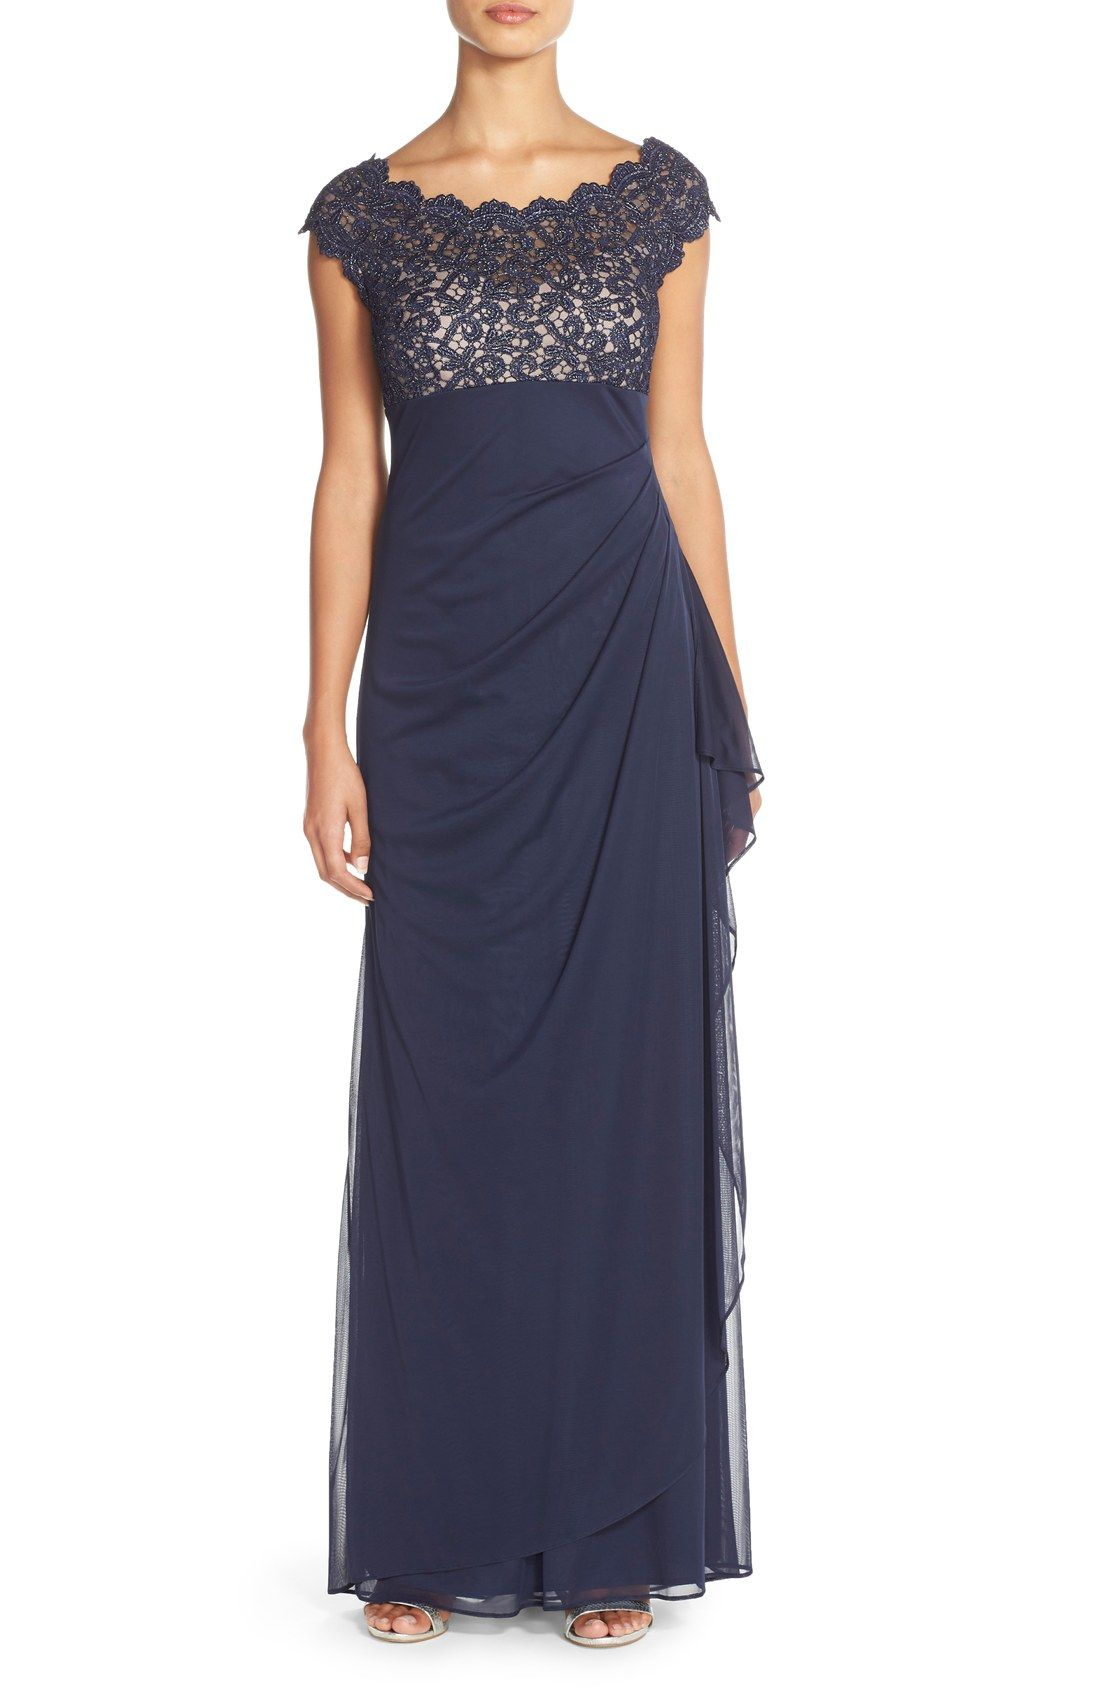 Xscape Metallic Lace & Jersey Gown (Regular & Petite) | MOB Dress ...